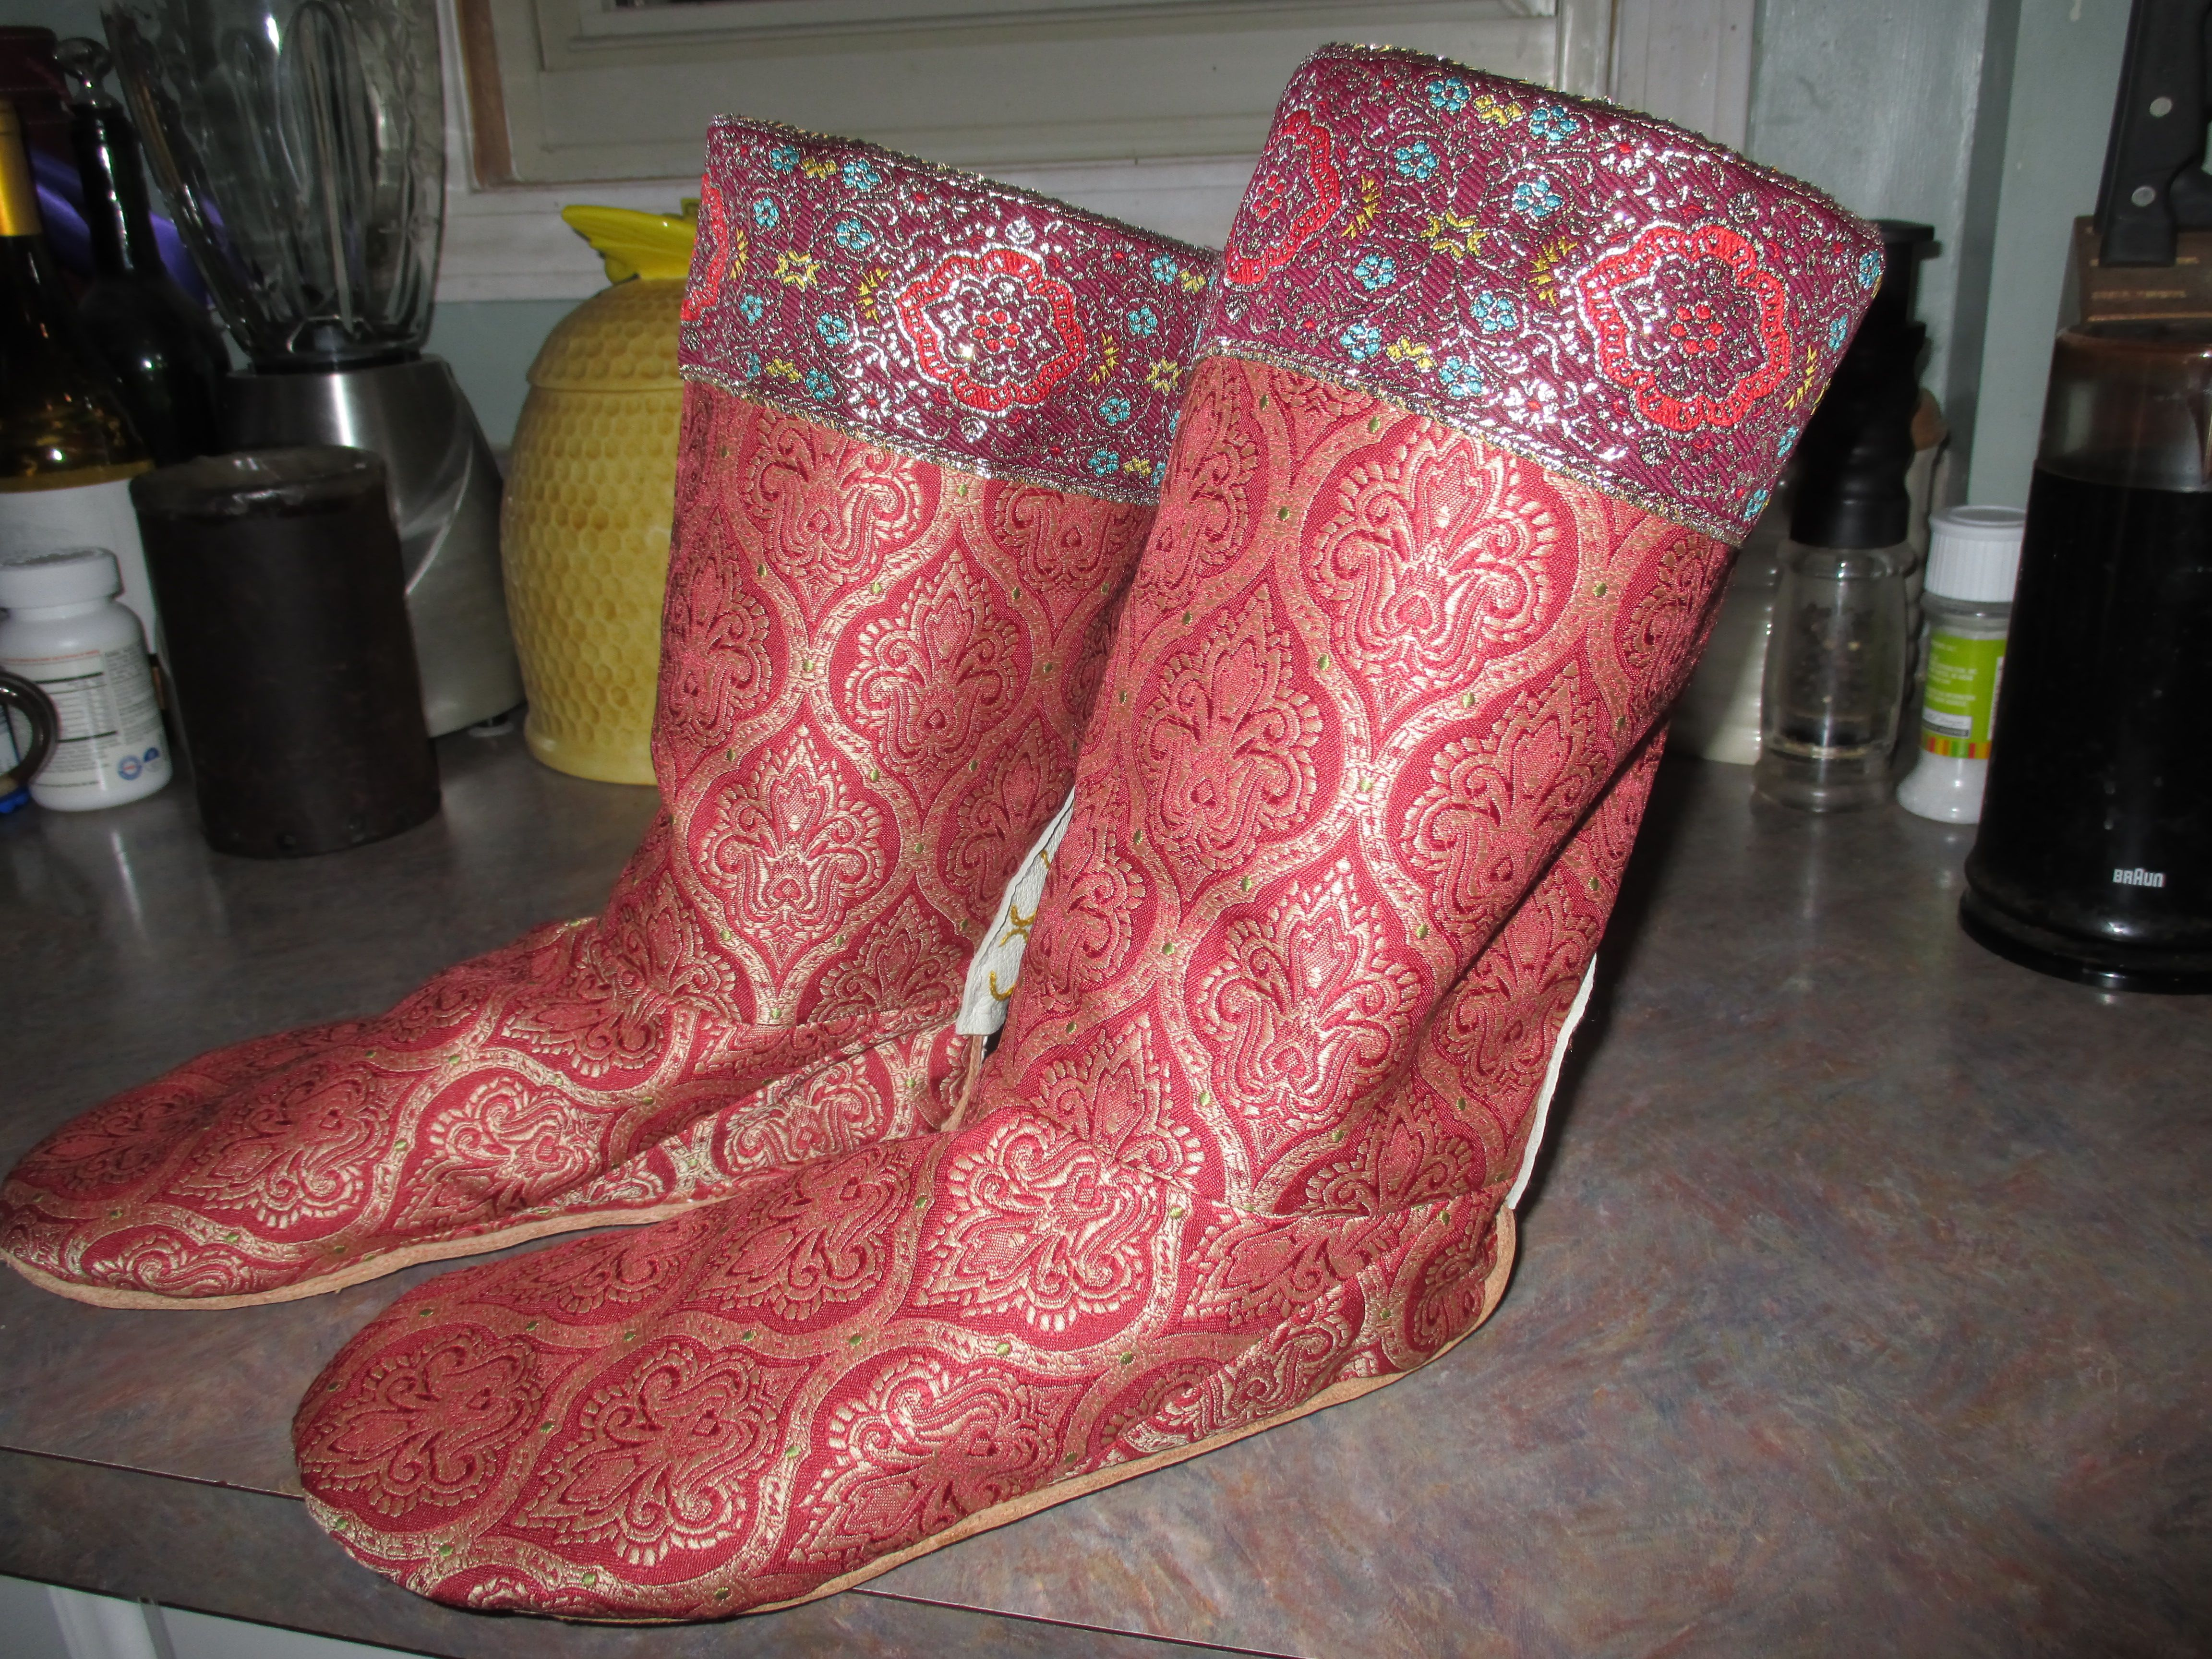 Second pair of boots finished